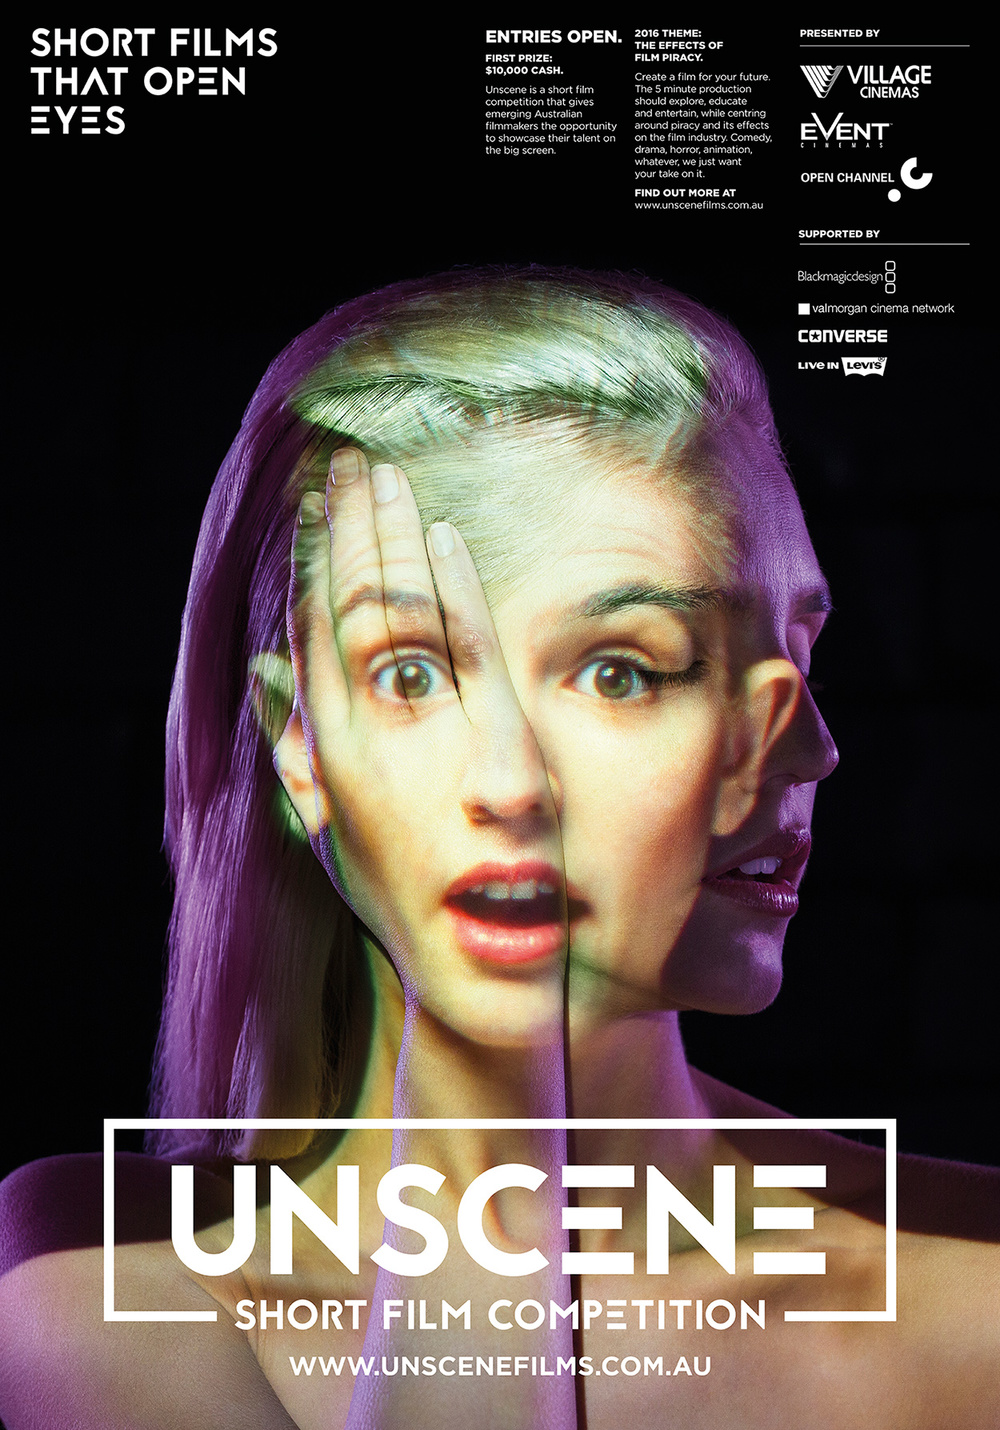 UNSCENE for Village Cinema